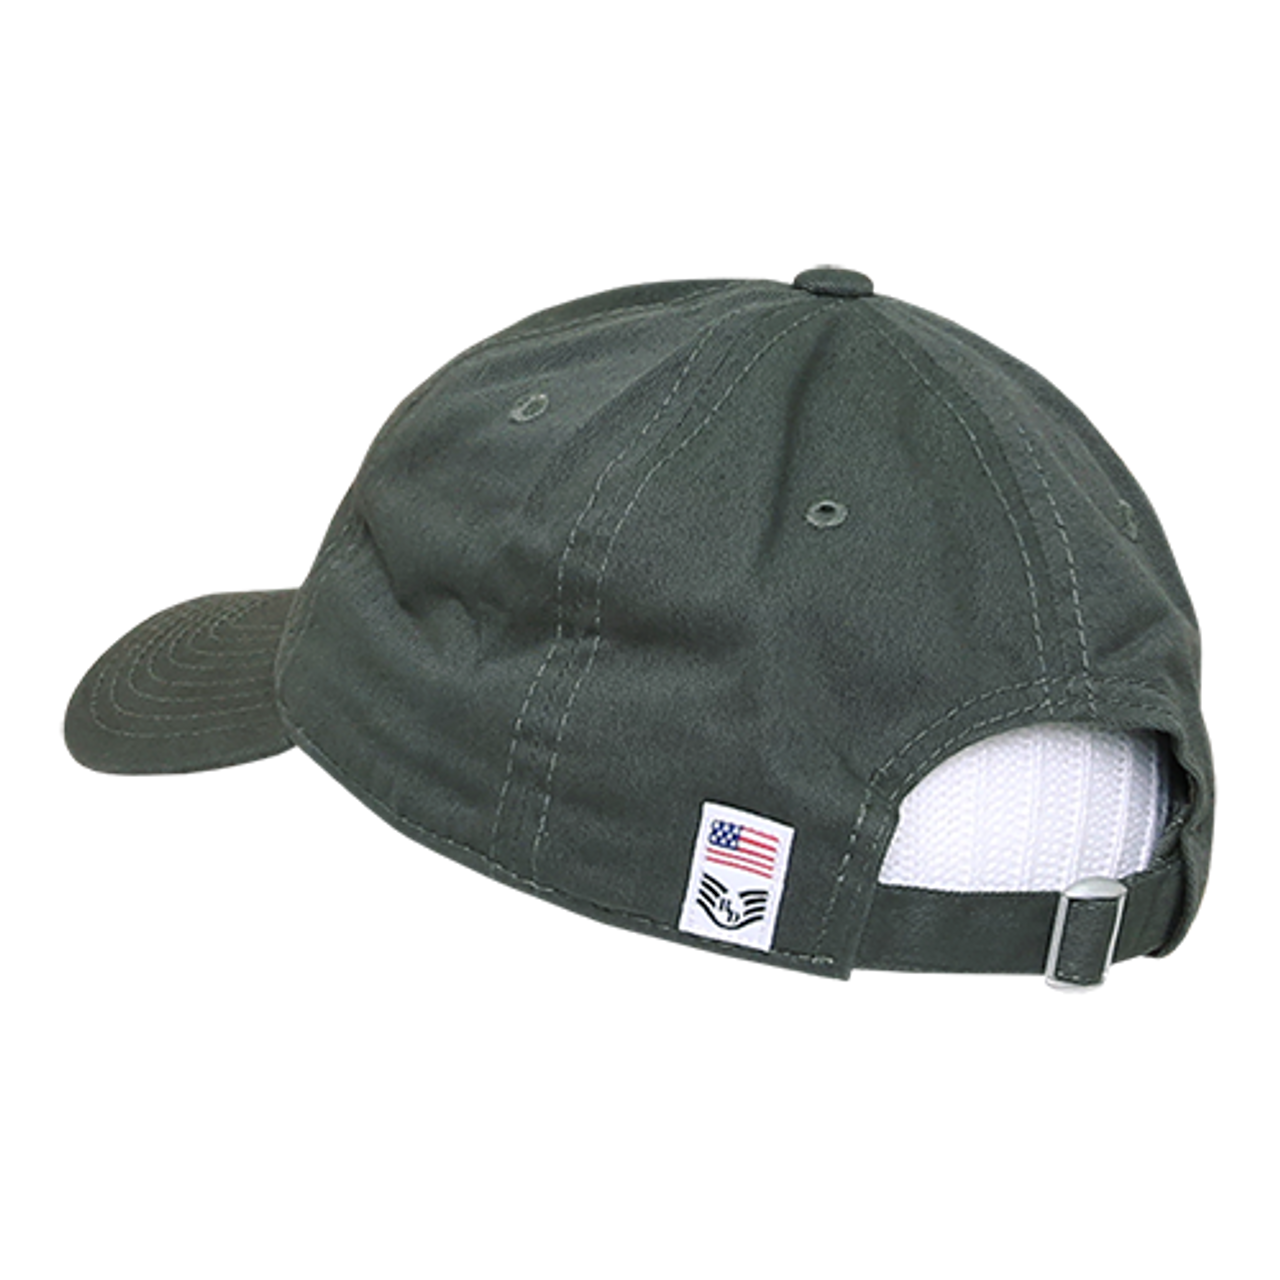 A03 - Freedom USA Flag Cap - Relaxed Cotton - Olive Drab - U.S. ... 95078a91b